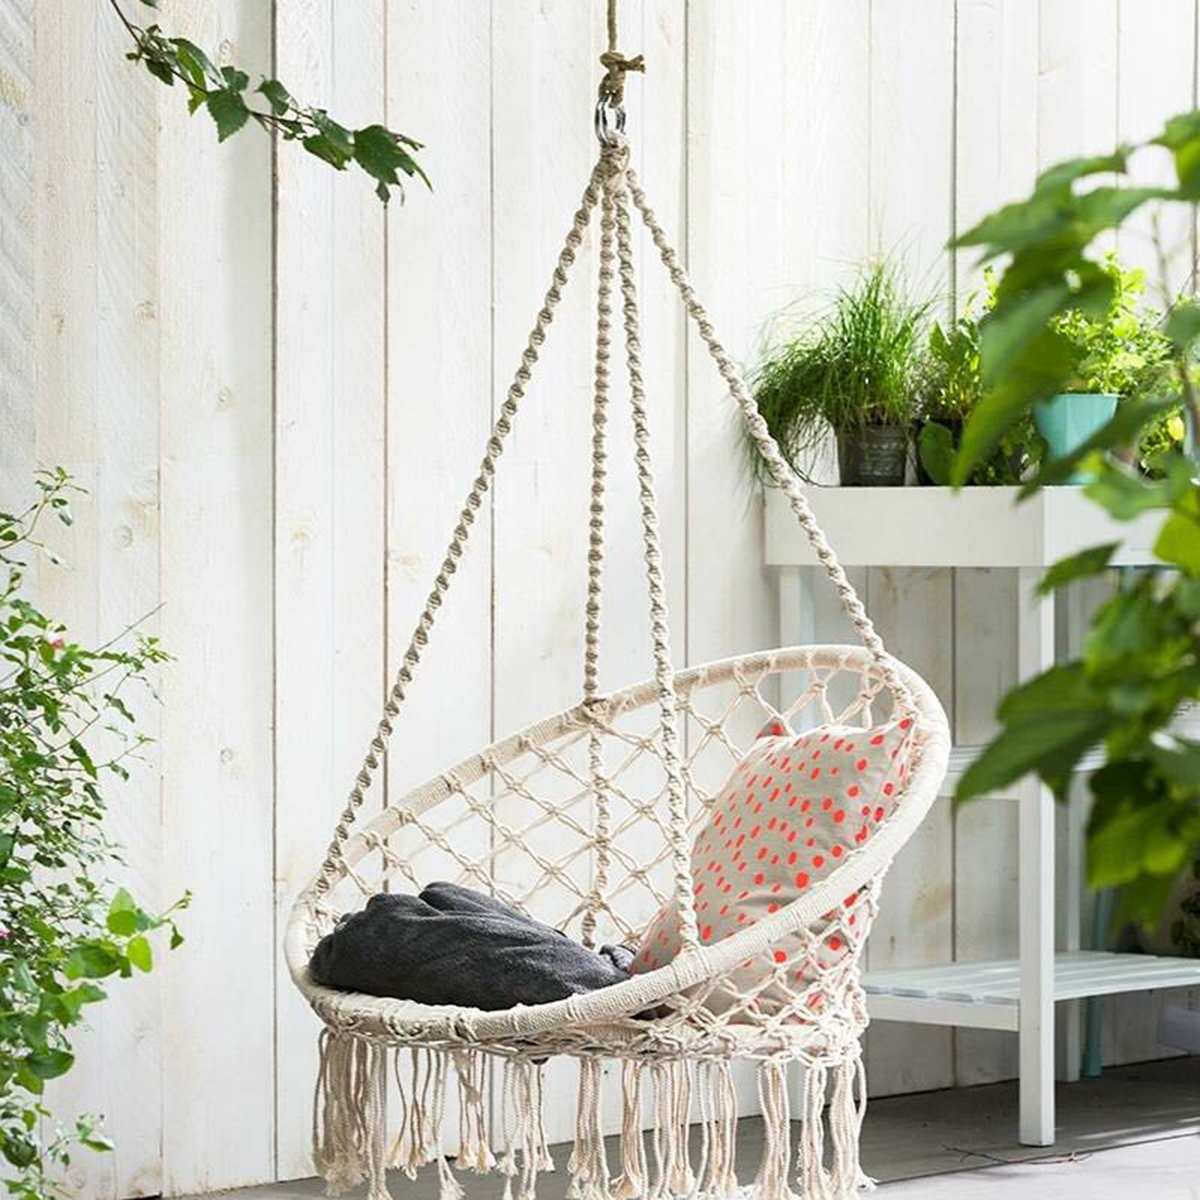 Nordic Cotton Rope Hammock Chair Handmade Knitted Indoor Outdoor Kids Swing Bed Adult Swinging Hanging Chair Hammock